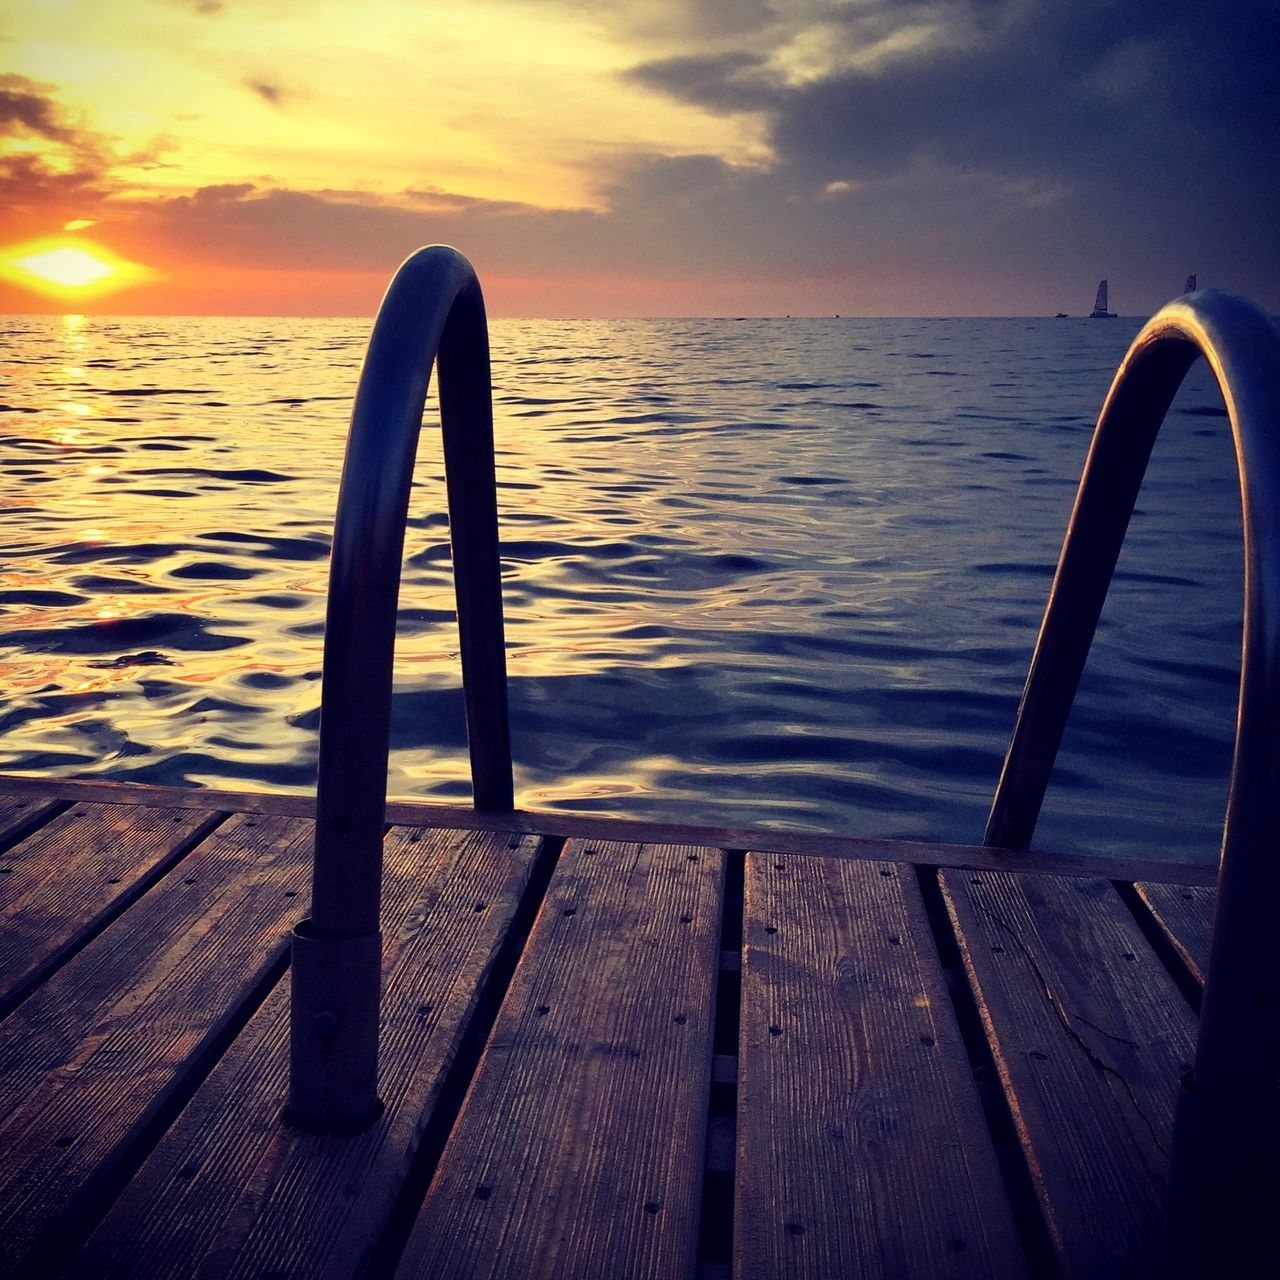 Water Sea Tranquility Outdoors Sunset San Antonio Ibiza Steps Into Water Boat Dock Wooden Planks Boardwalk